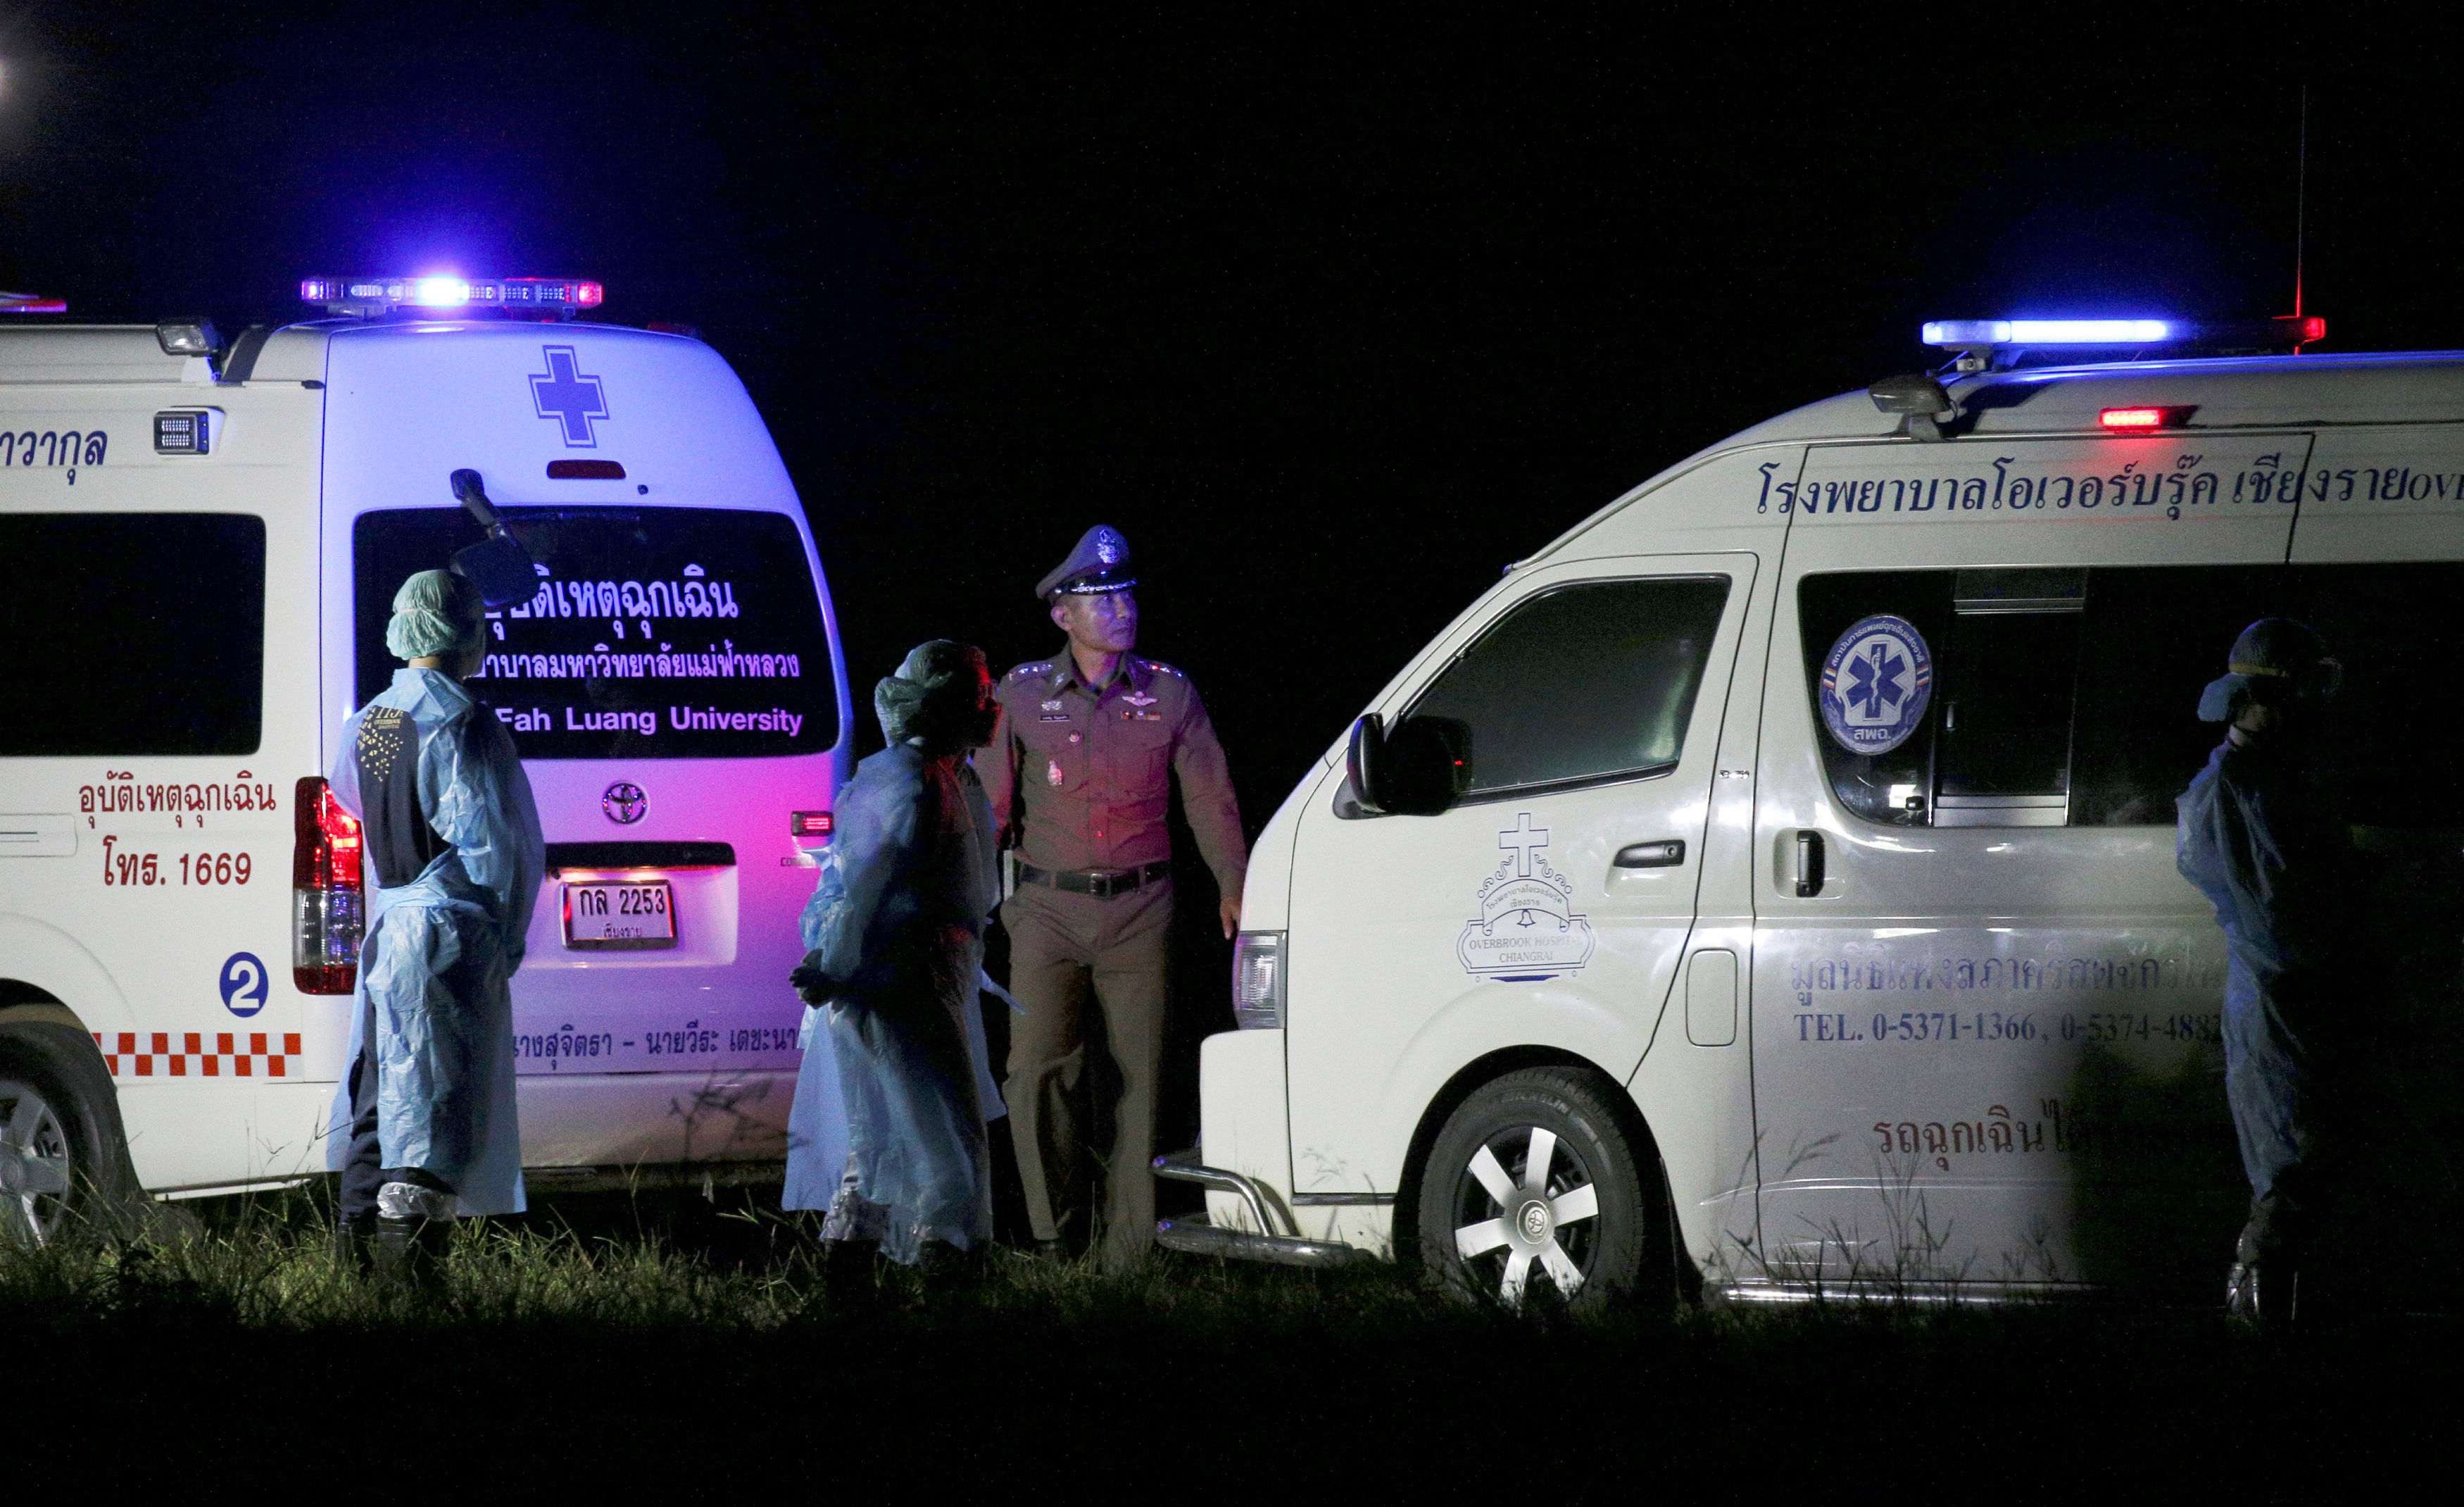 Ambulances wait to transport rescued schoolboys to a hospital at a military airport in Chiang Rai, Thailand, July 9, 2018. Photo: REUTERS Perawongmetha